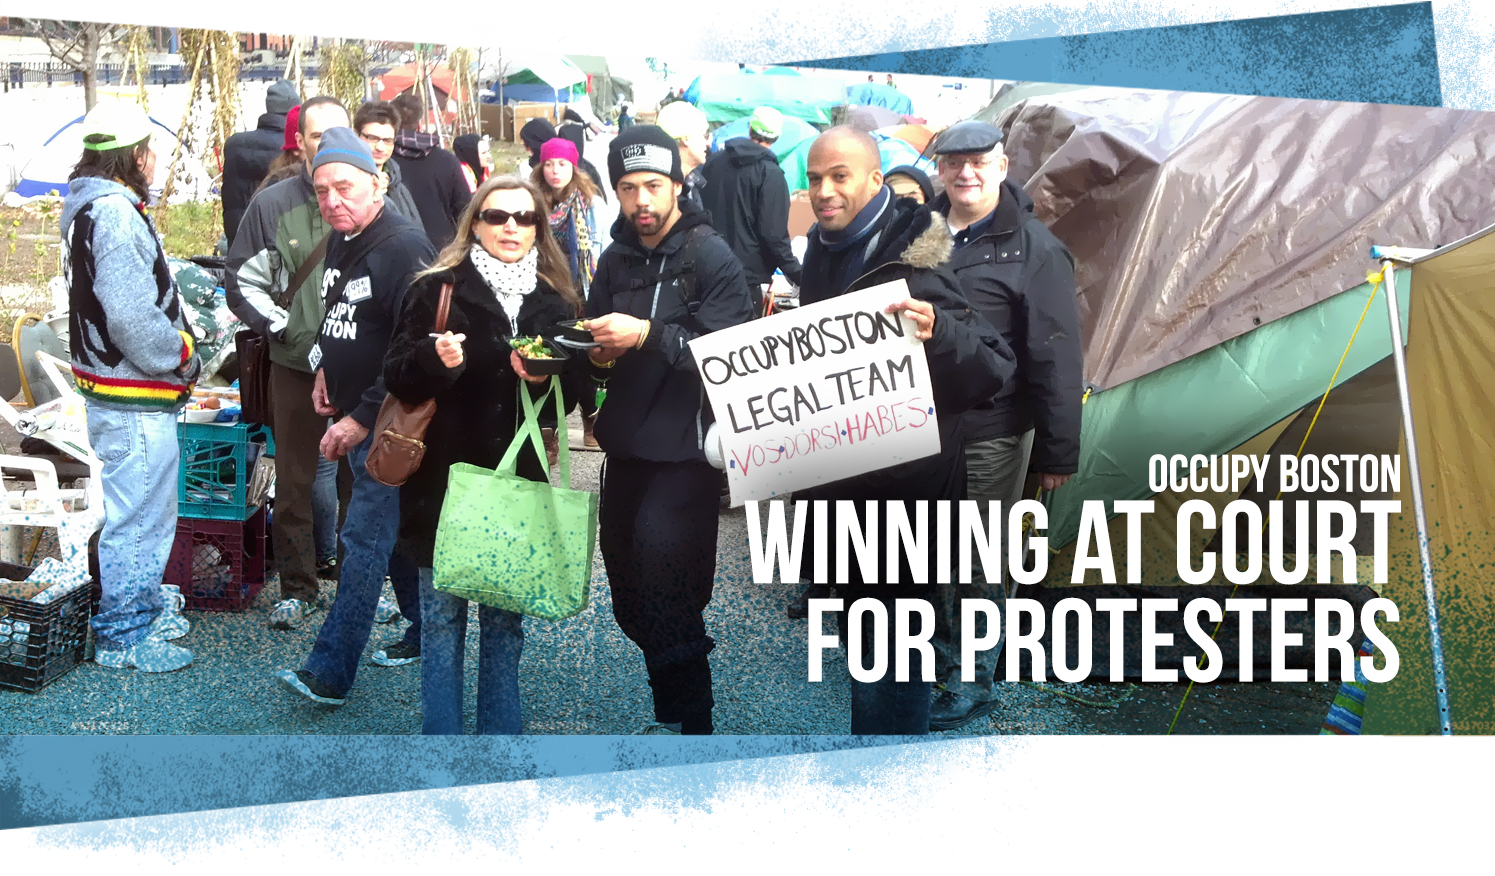 Winning at Court for Protesters